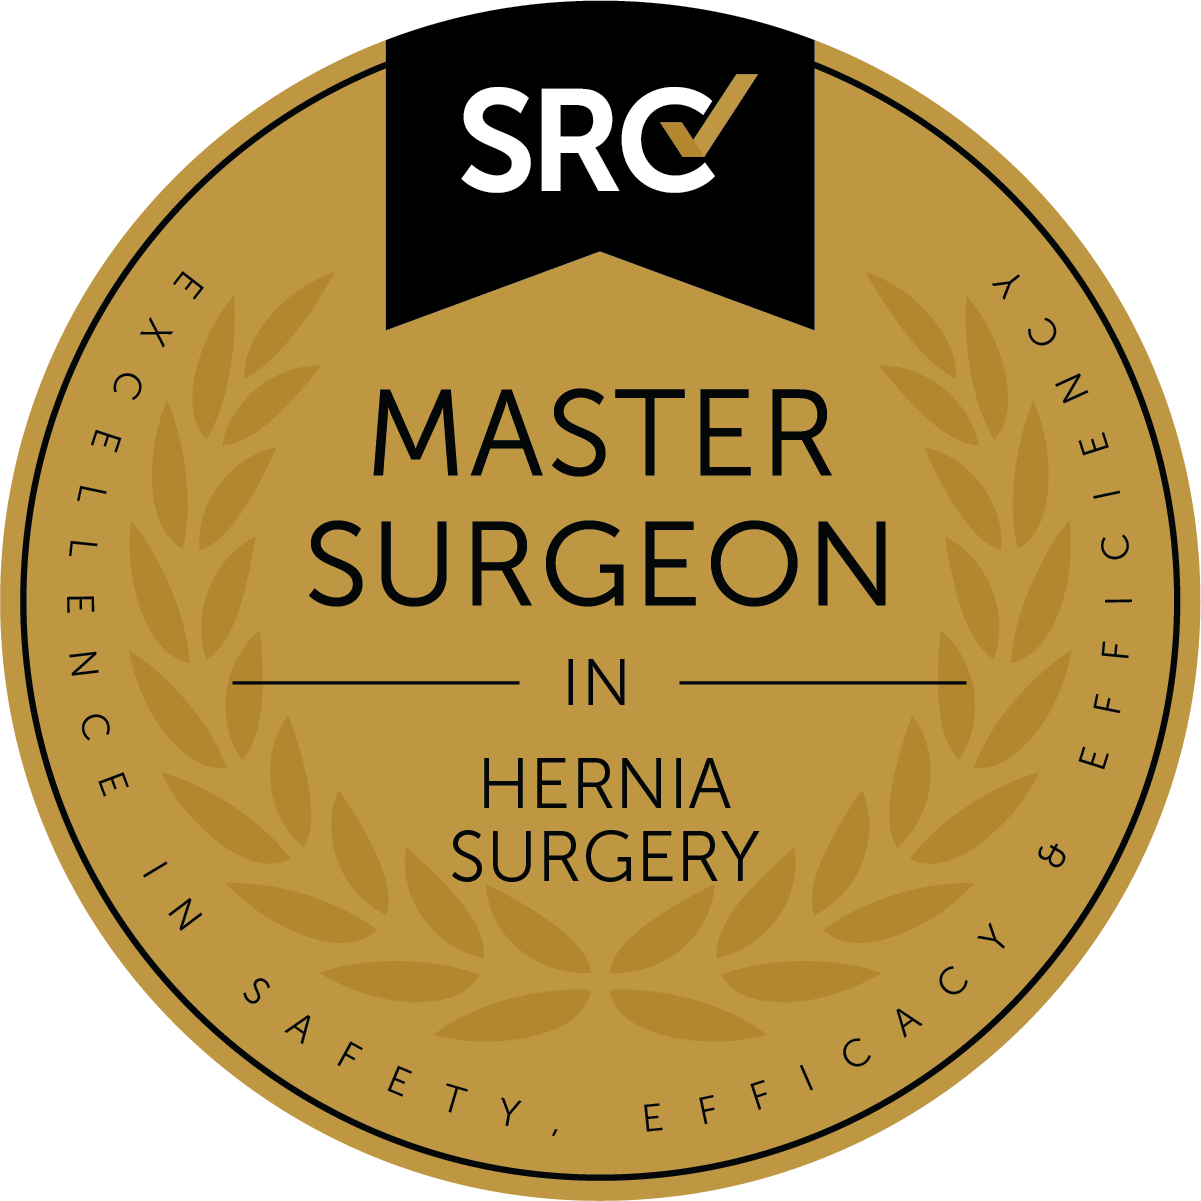 Master Surgeon In Hernia Surgery